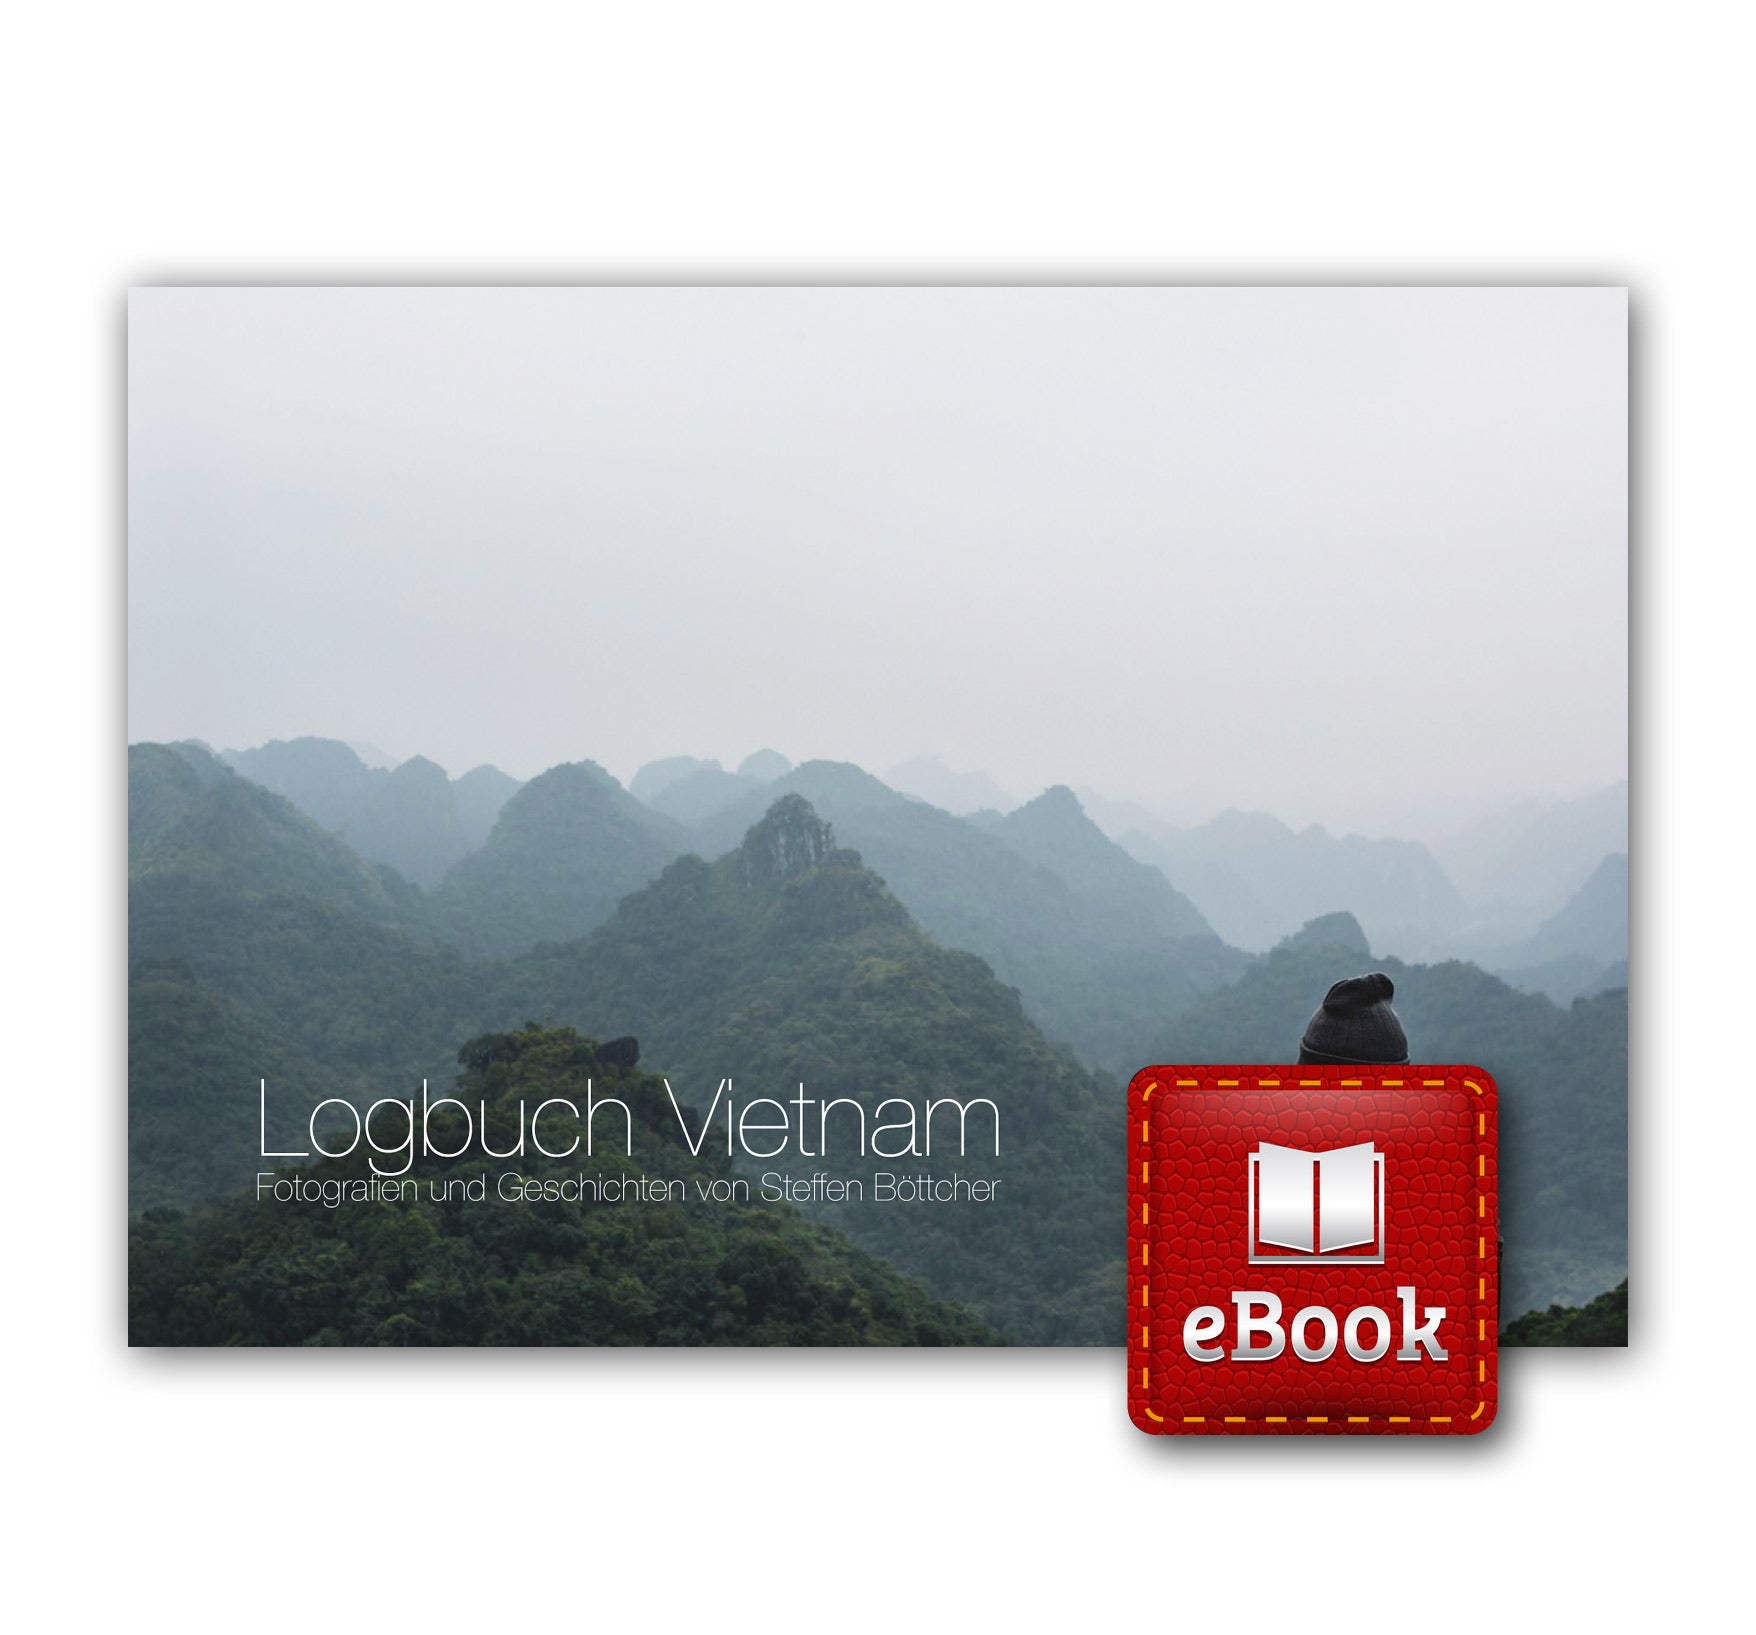 eBook Logbuch Vietnam